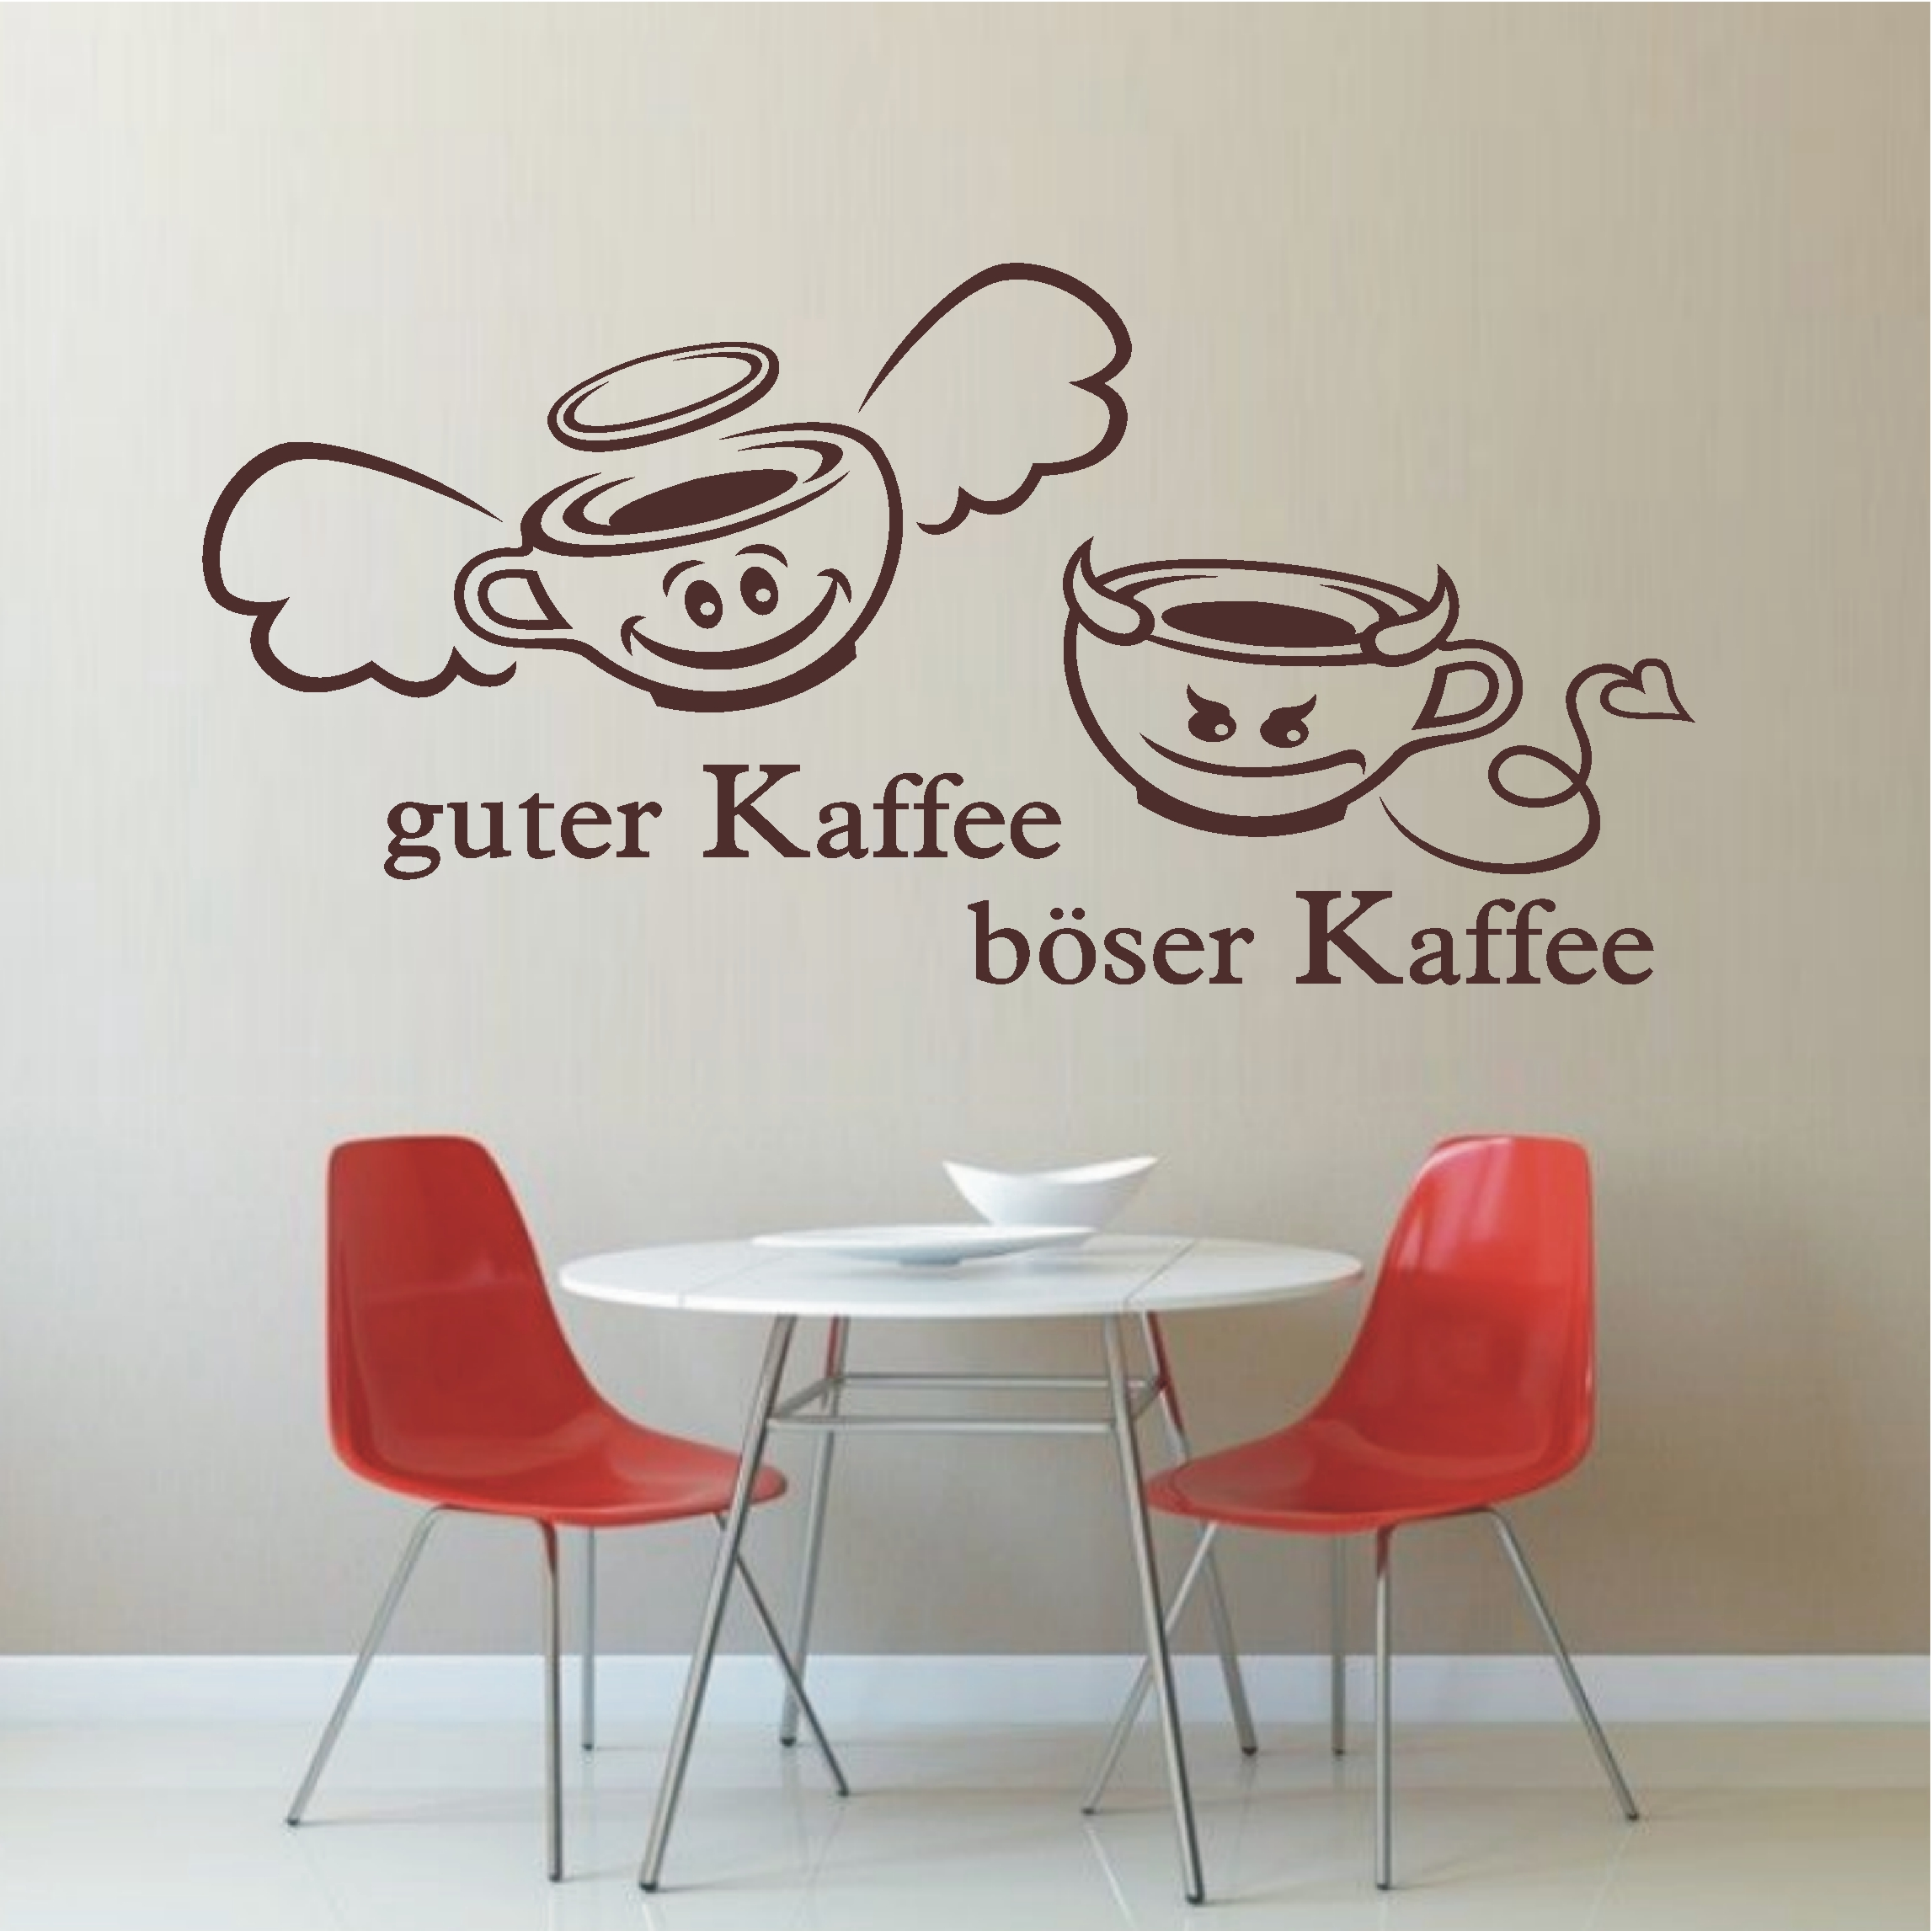 deko shop wandtattoo guter b ser kaffee deko shop. Black Bedroom Furniture Sets. Home Design Ideas